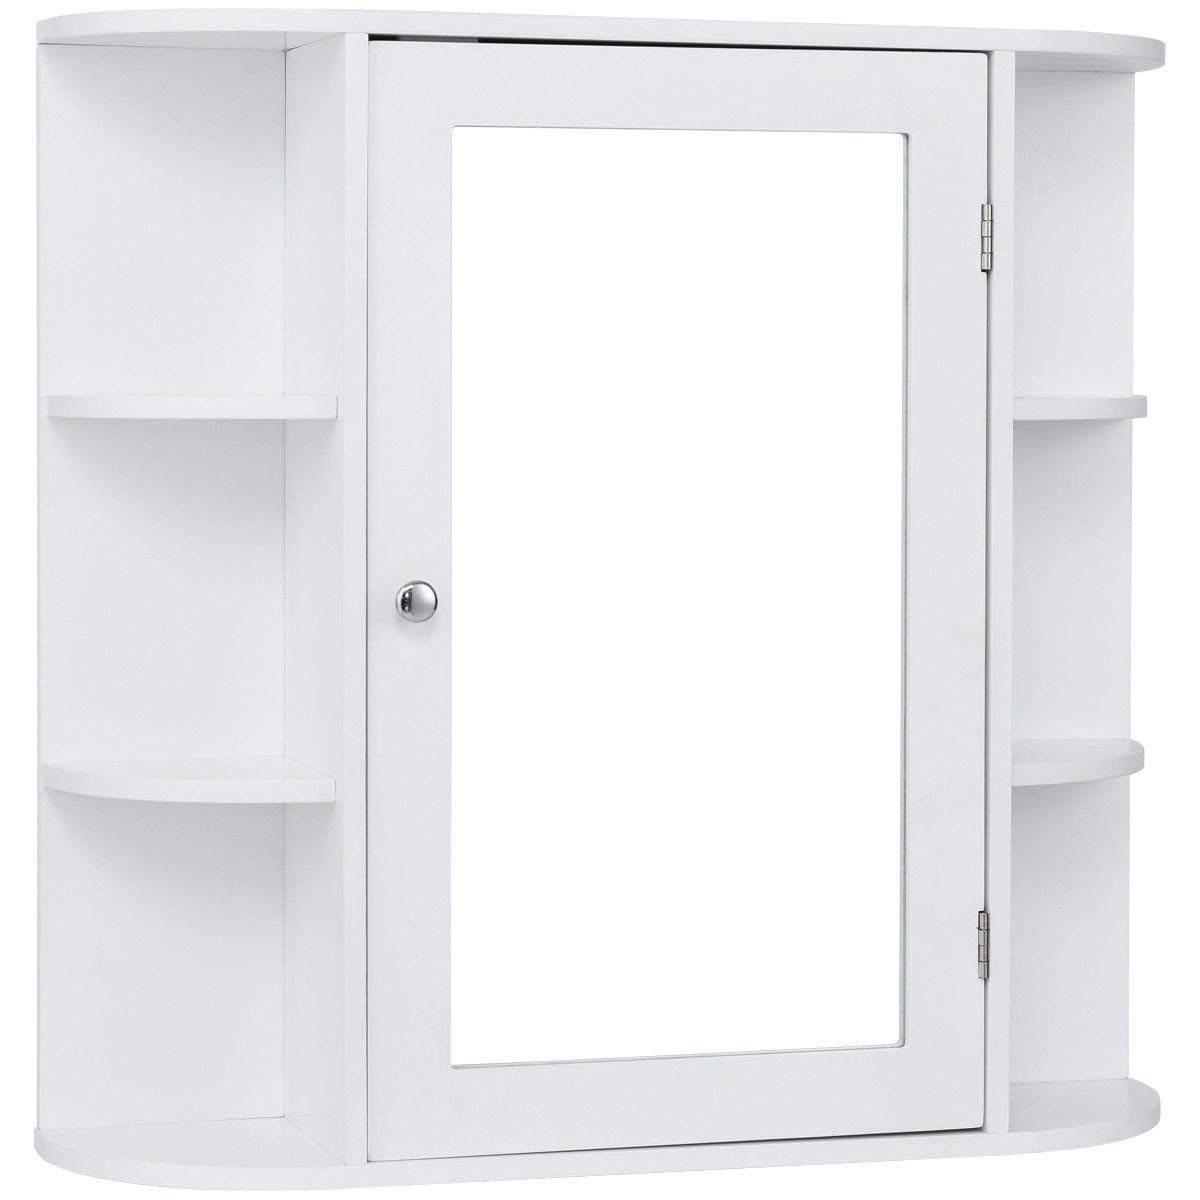 TANGKULA Bathroom Cabinet Single Door Wall Mount with Mirror Organizer Storage Cabinet(2 Tier Inner Shelves)